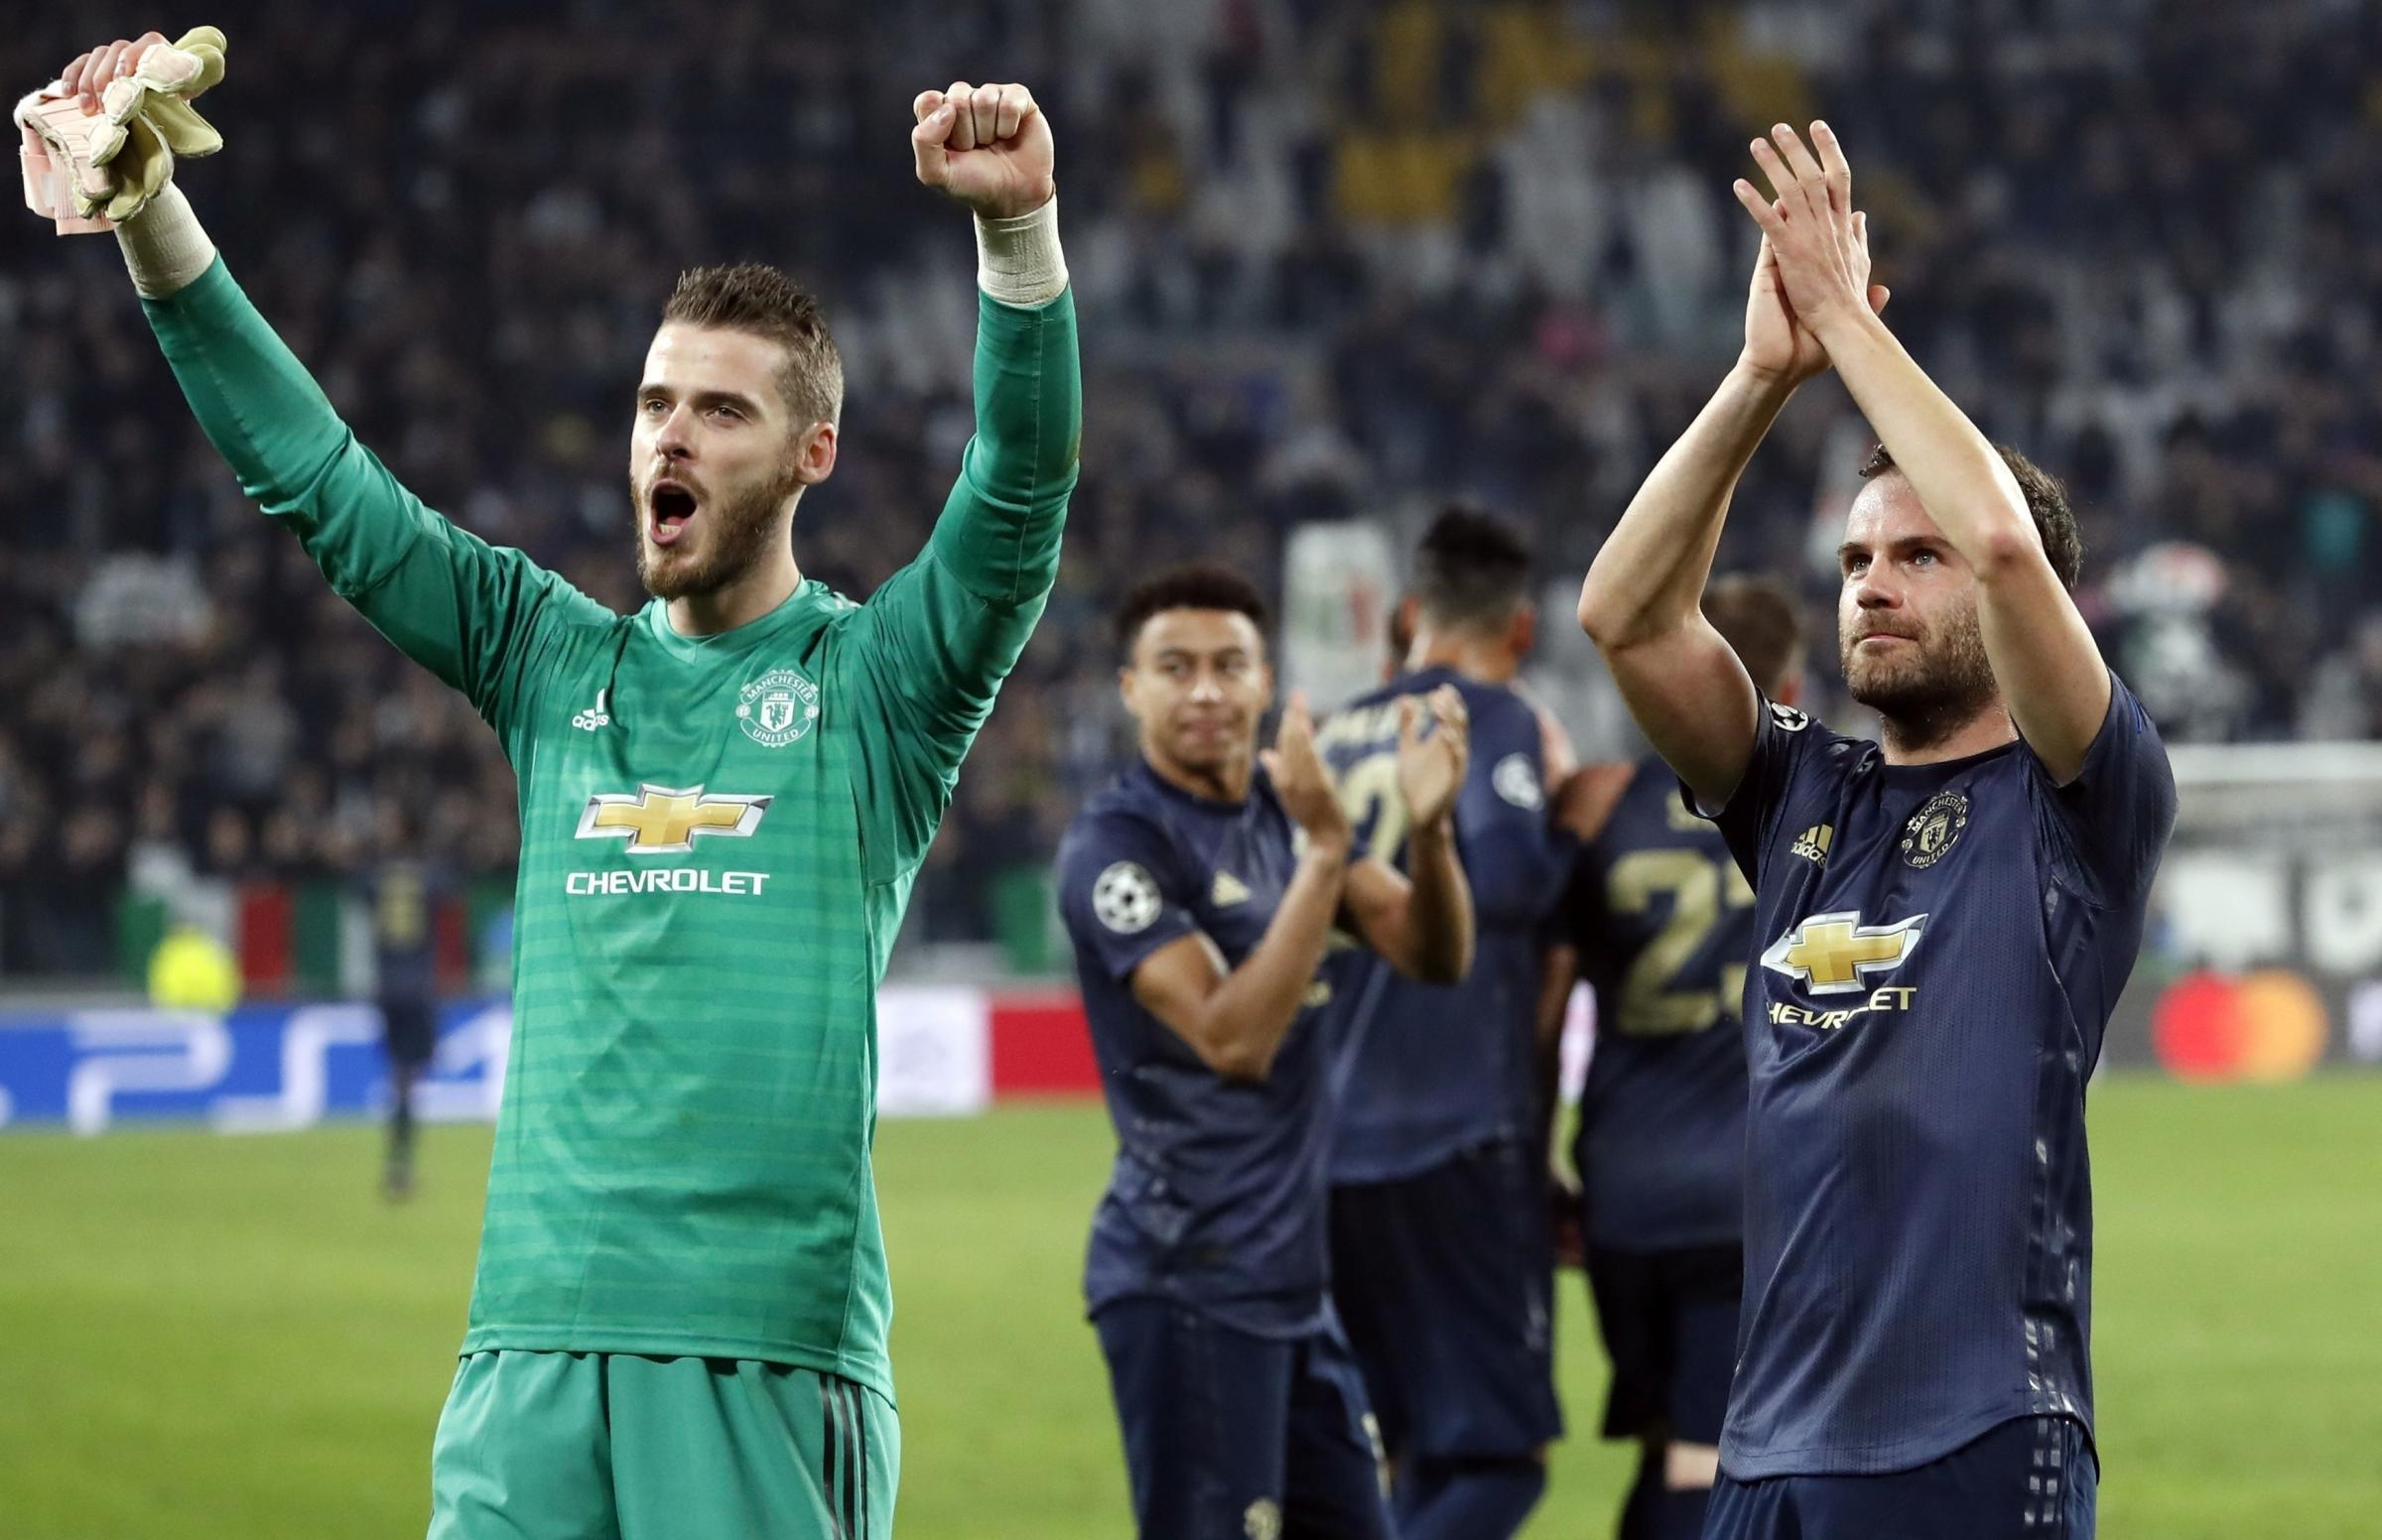 ManU goalkeeper David de Gea, left, and Juan Mata celebrate at the end of the Champions League group H soccer match between Juventus and Manchester United at the Allianz stadium in Turin, Italy, Wednesday, Nov. 7, 2018. Manchester won 2-1. (AP Photo/Anton